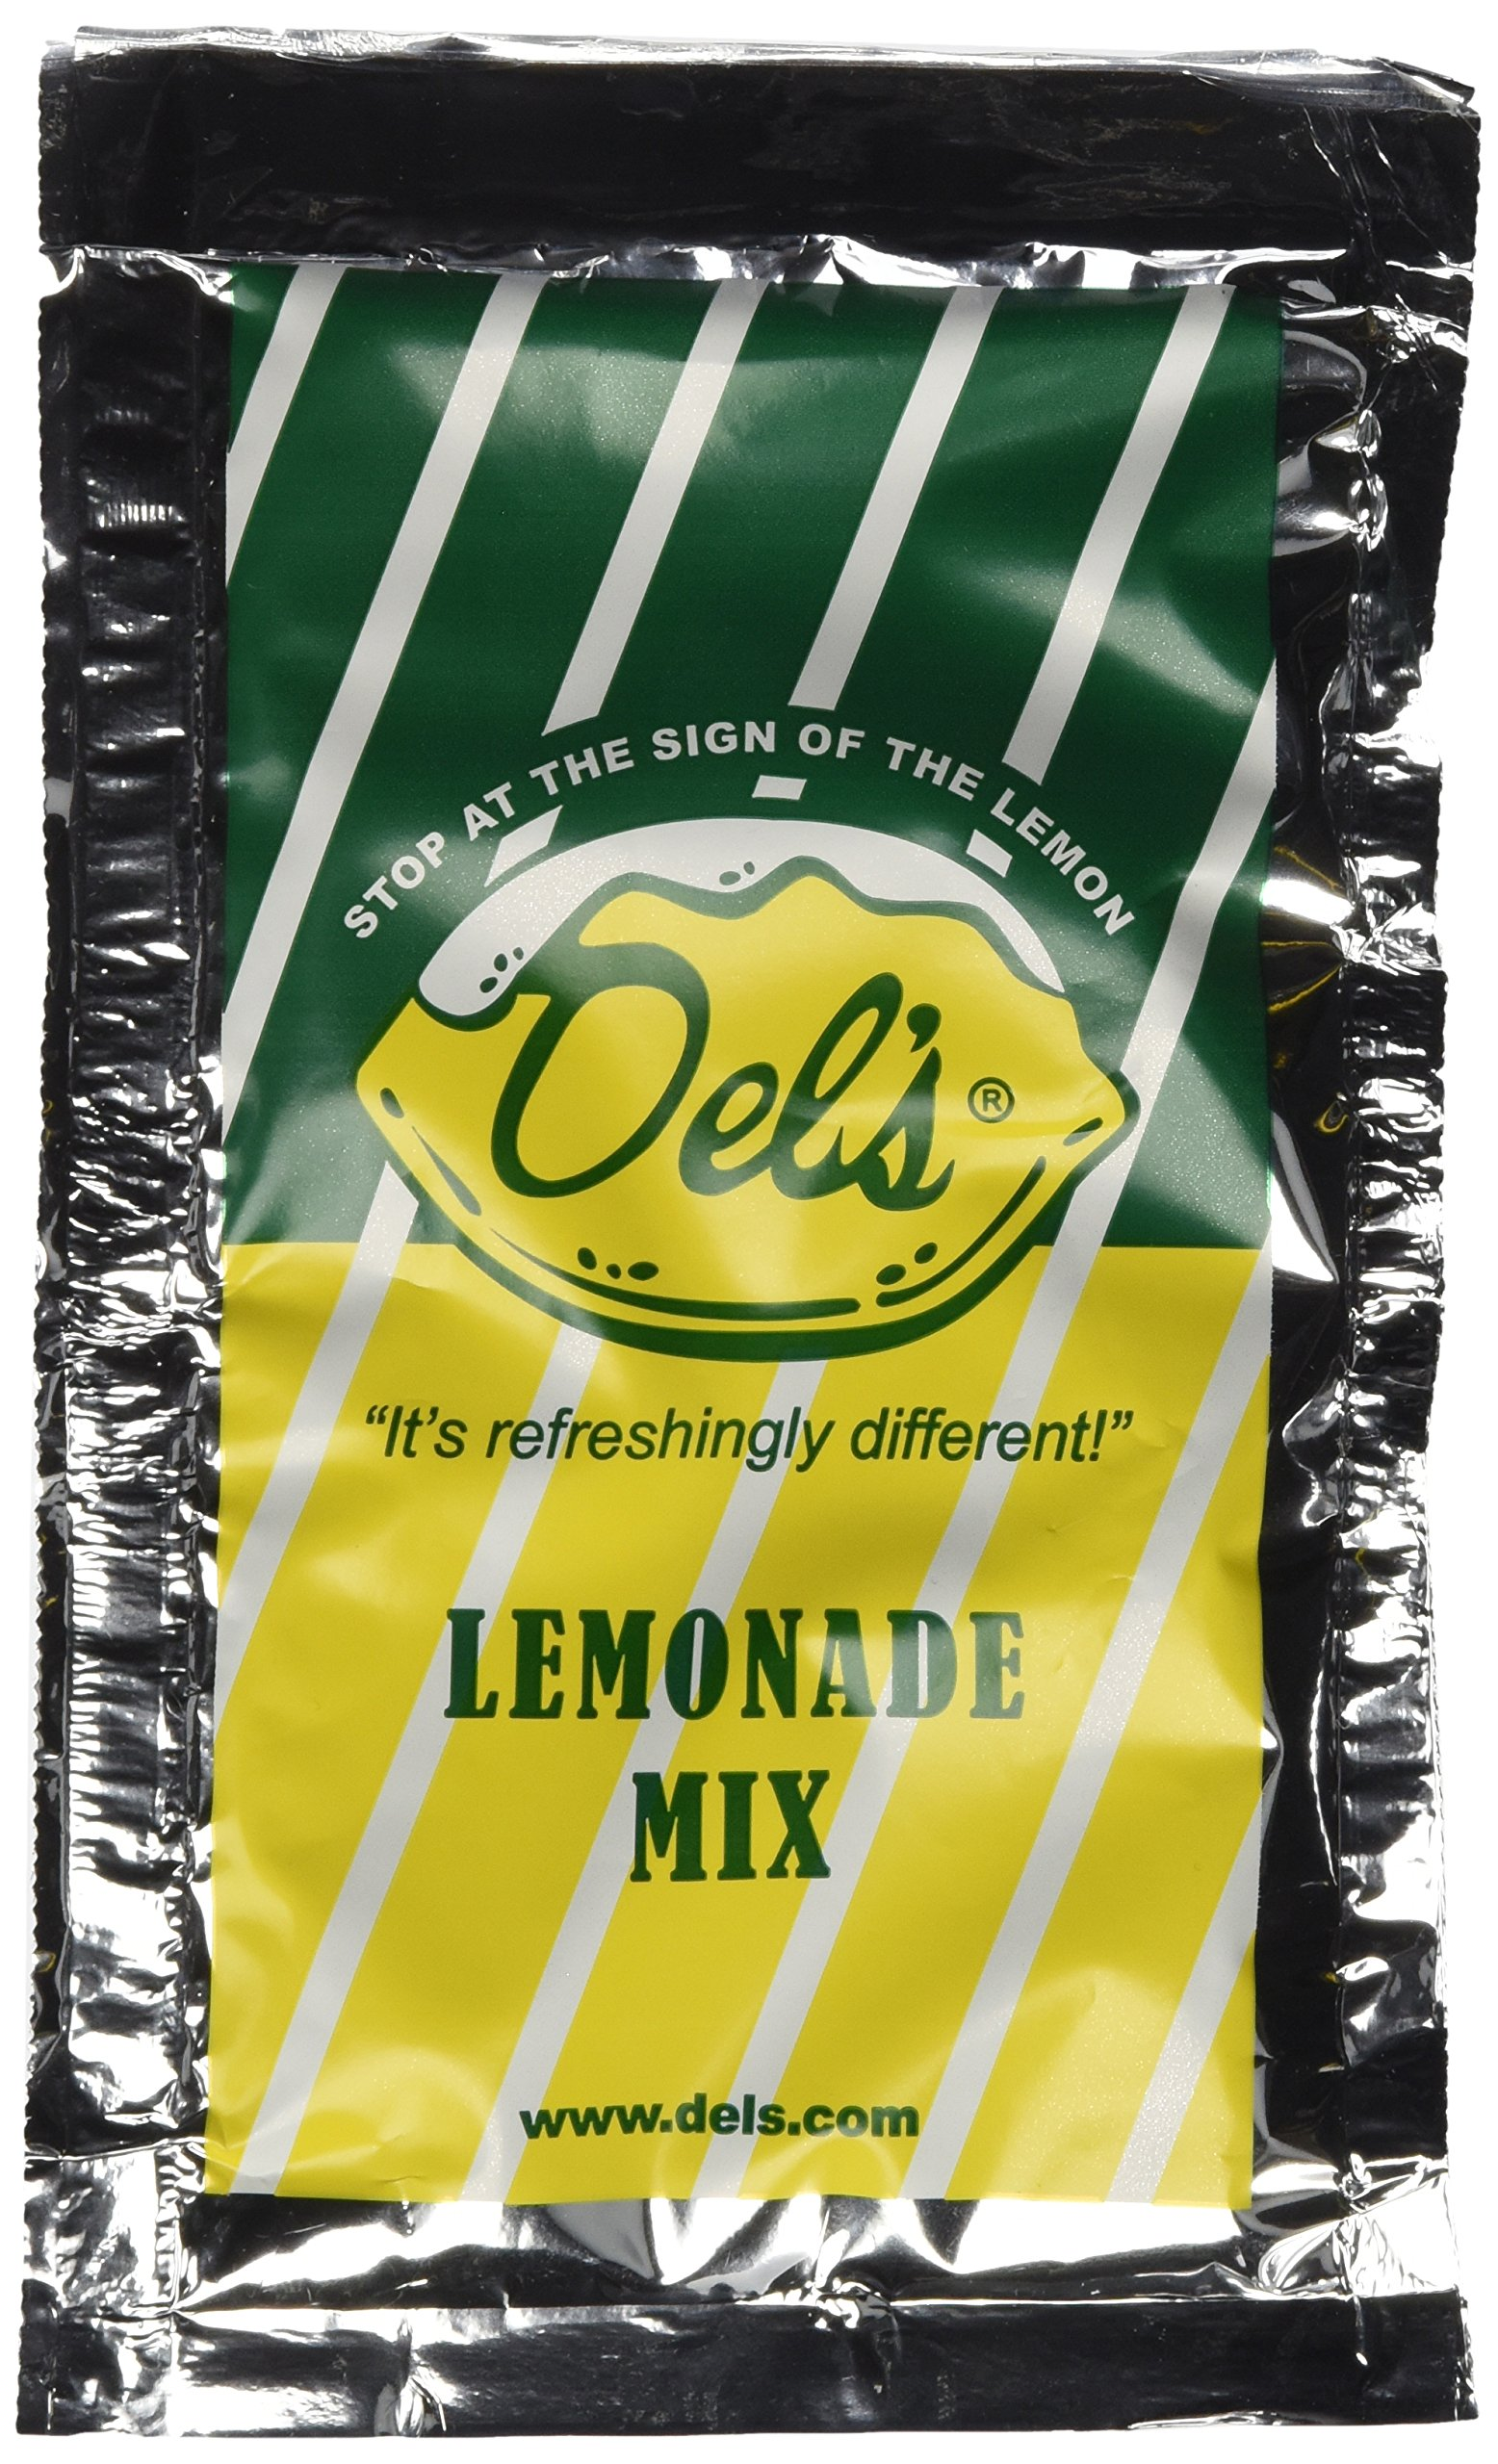 Del's Lemonade All Natural Lemonade Mix Four (4) Pack